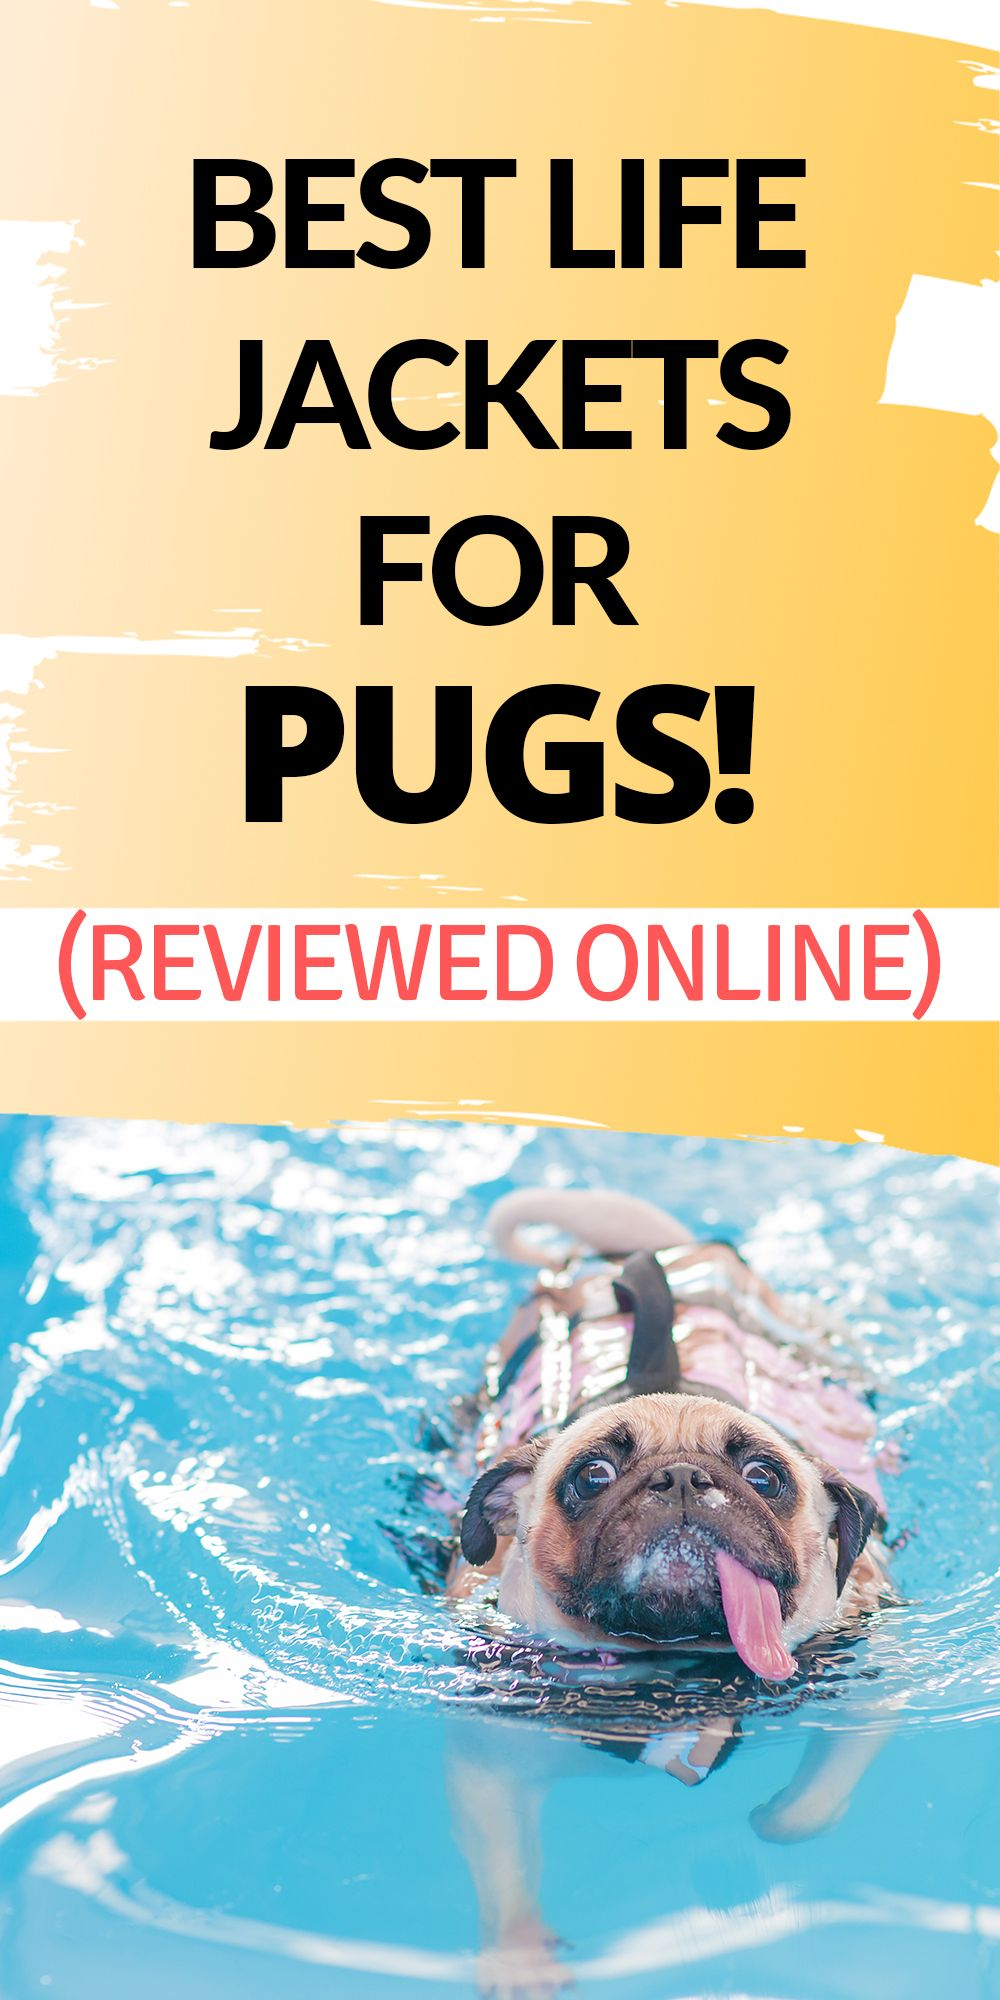 5 Of The best dog life jacket for Pugs. We've reviewed